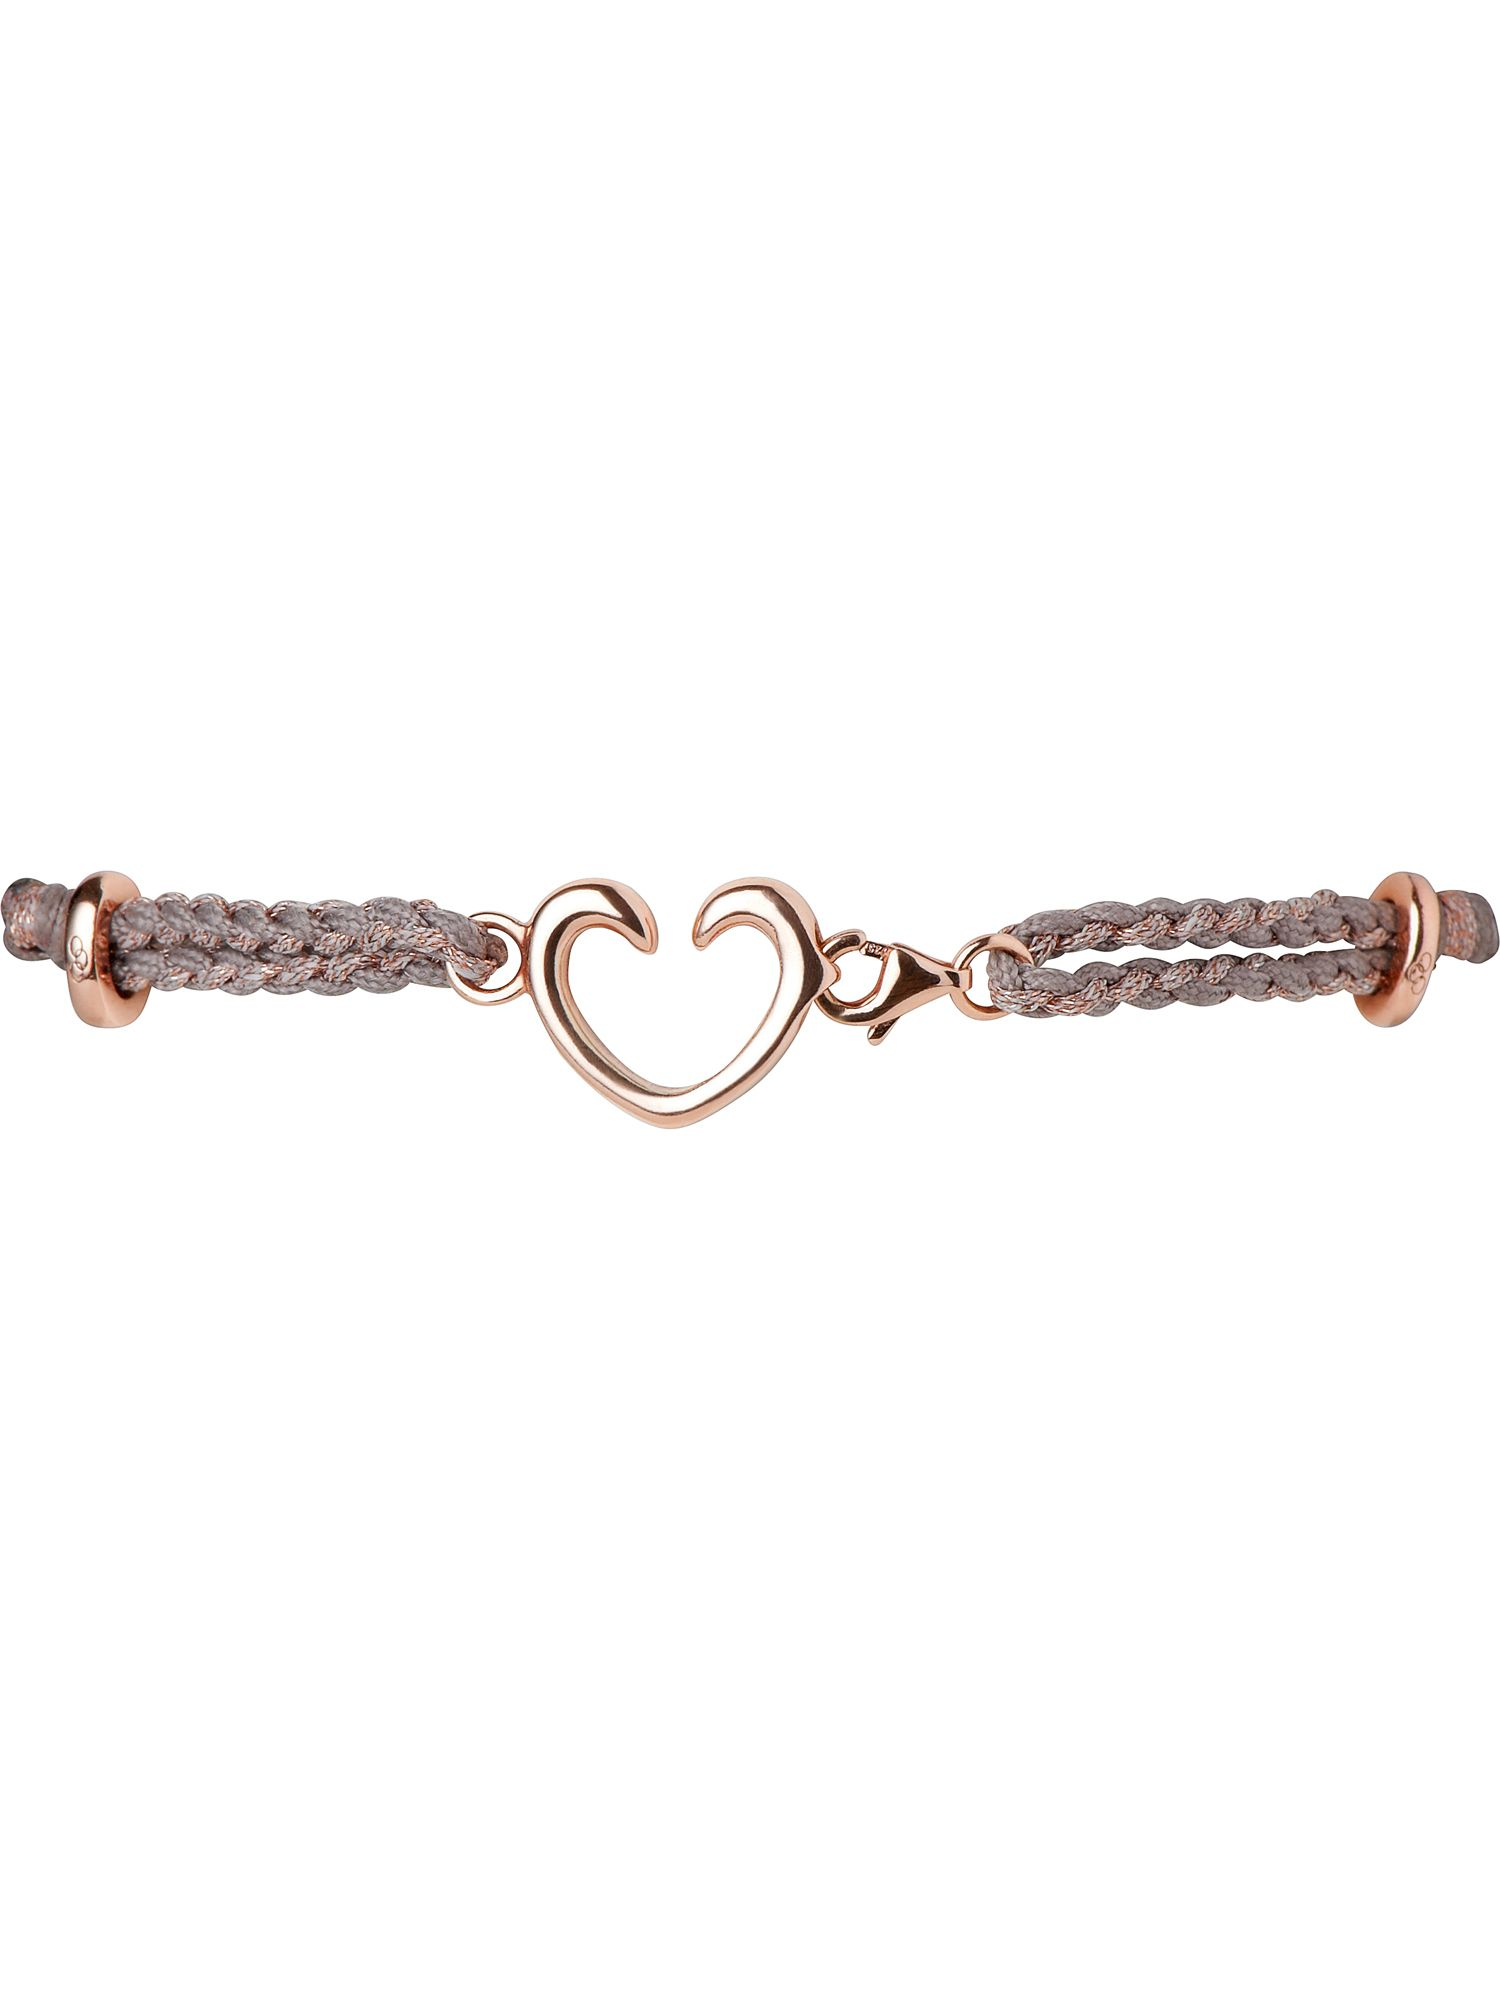 Charm catcher heart bracelet rose gold & copper